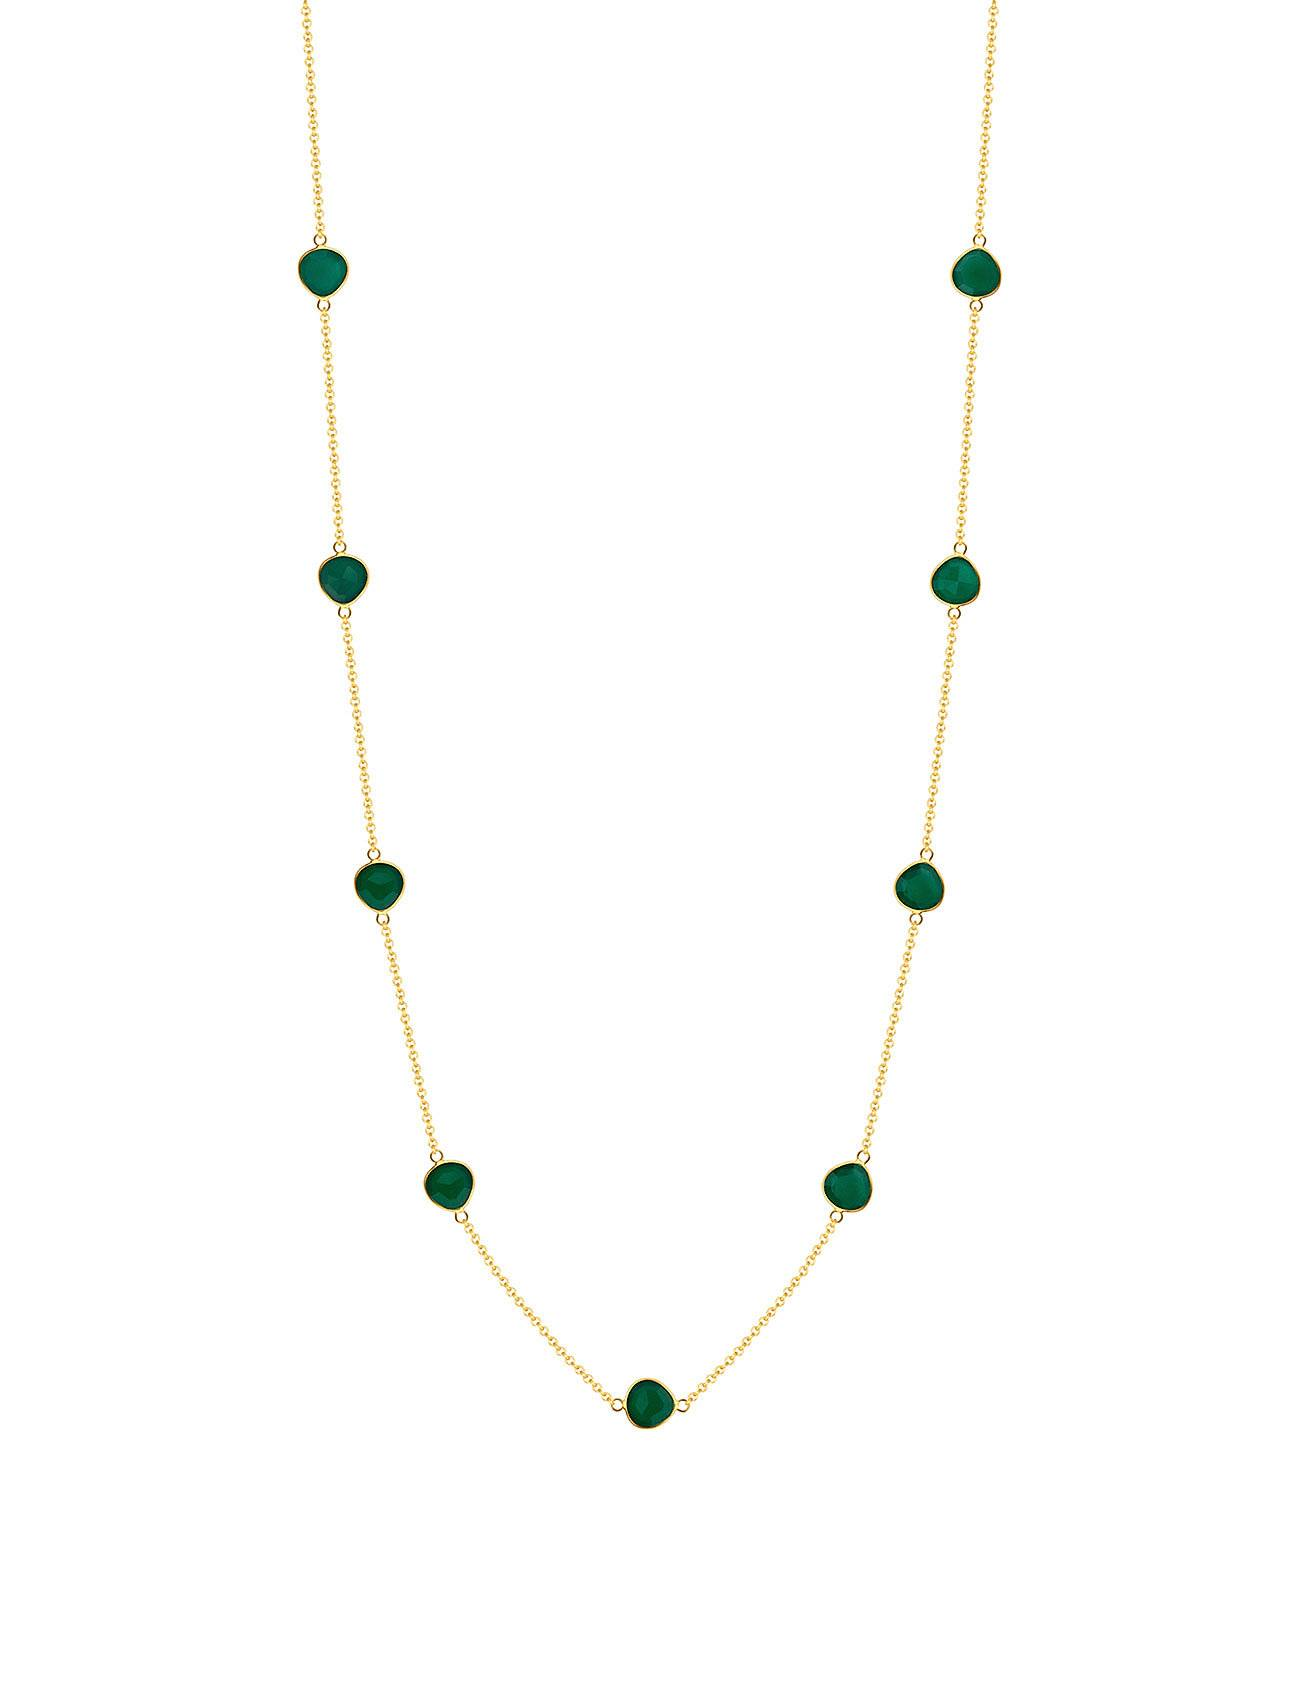 SOPHIE by SOPHIE Multi Stone Necklace